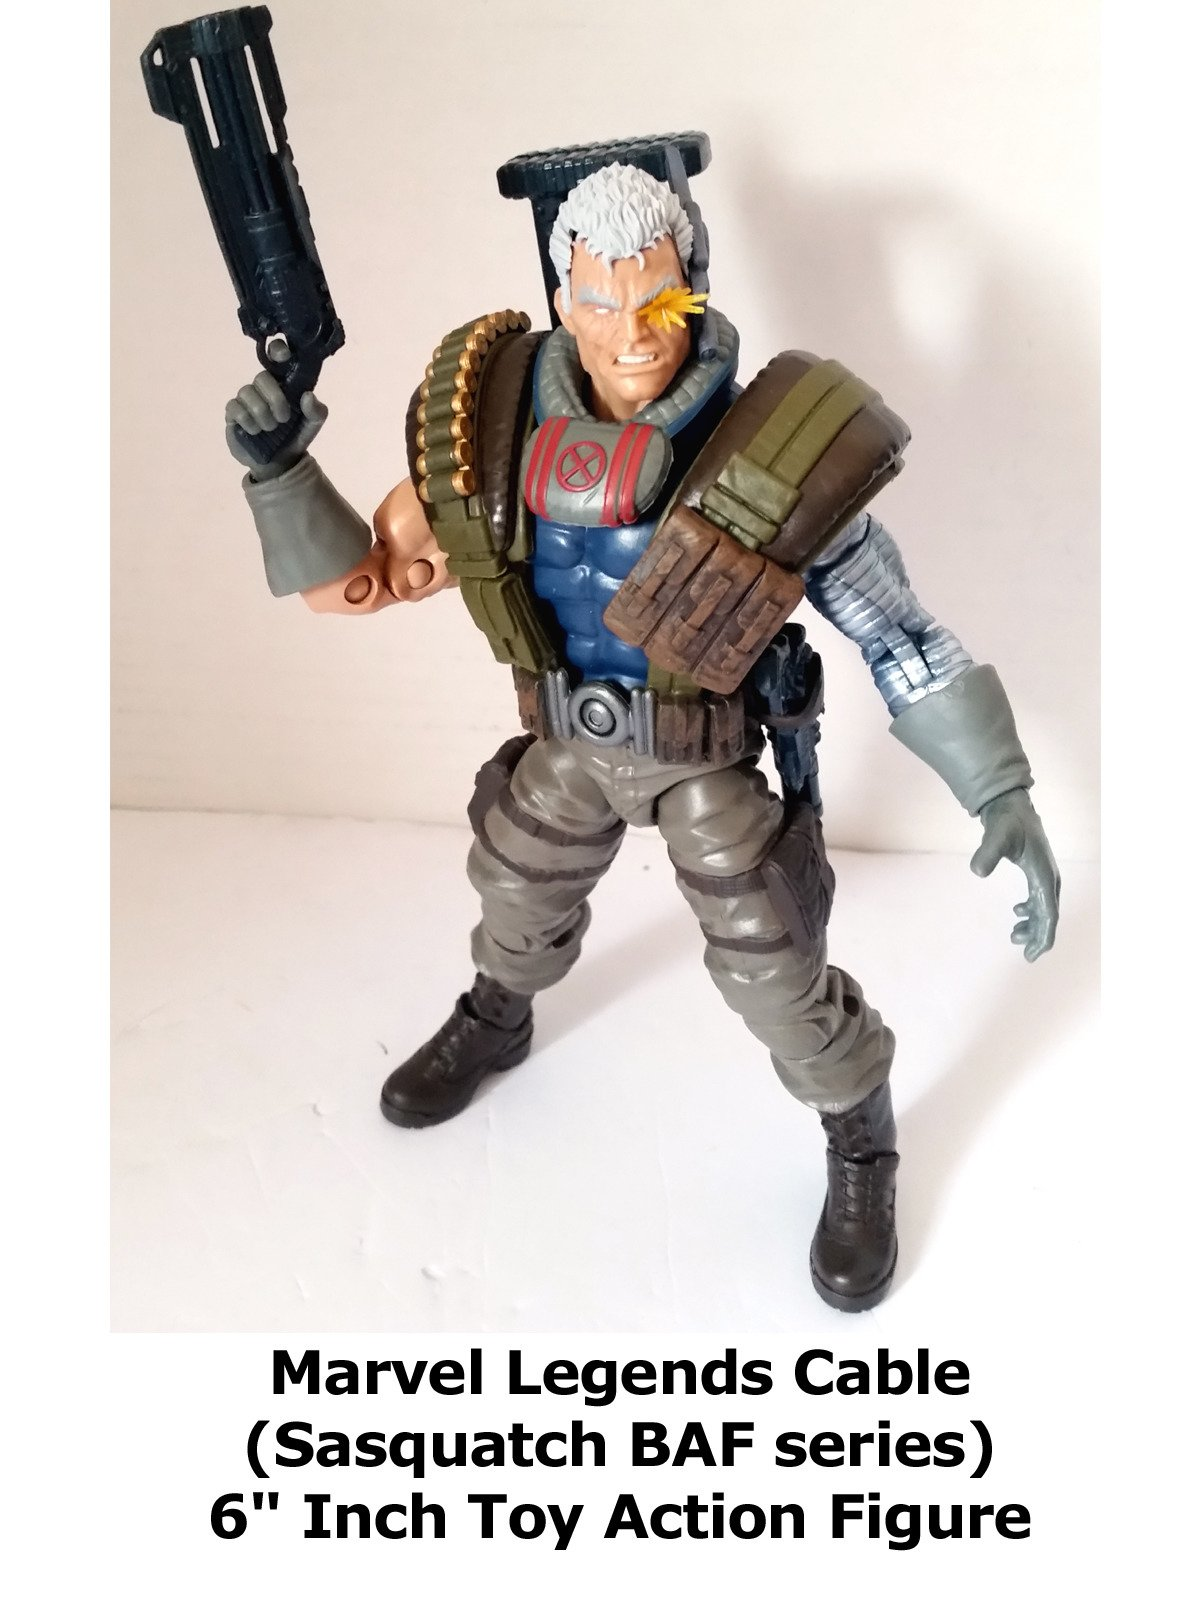 "Review: Marvel Legends Cable (Sasquatch BAF series) 6"" Inch Toy Action Figure"